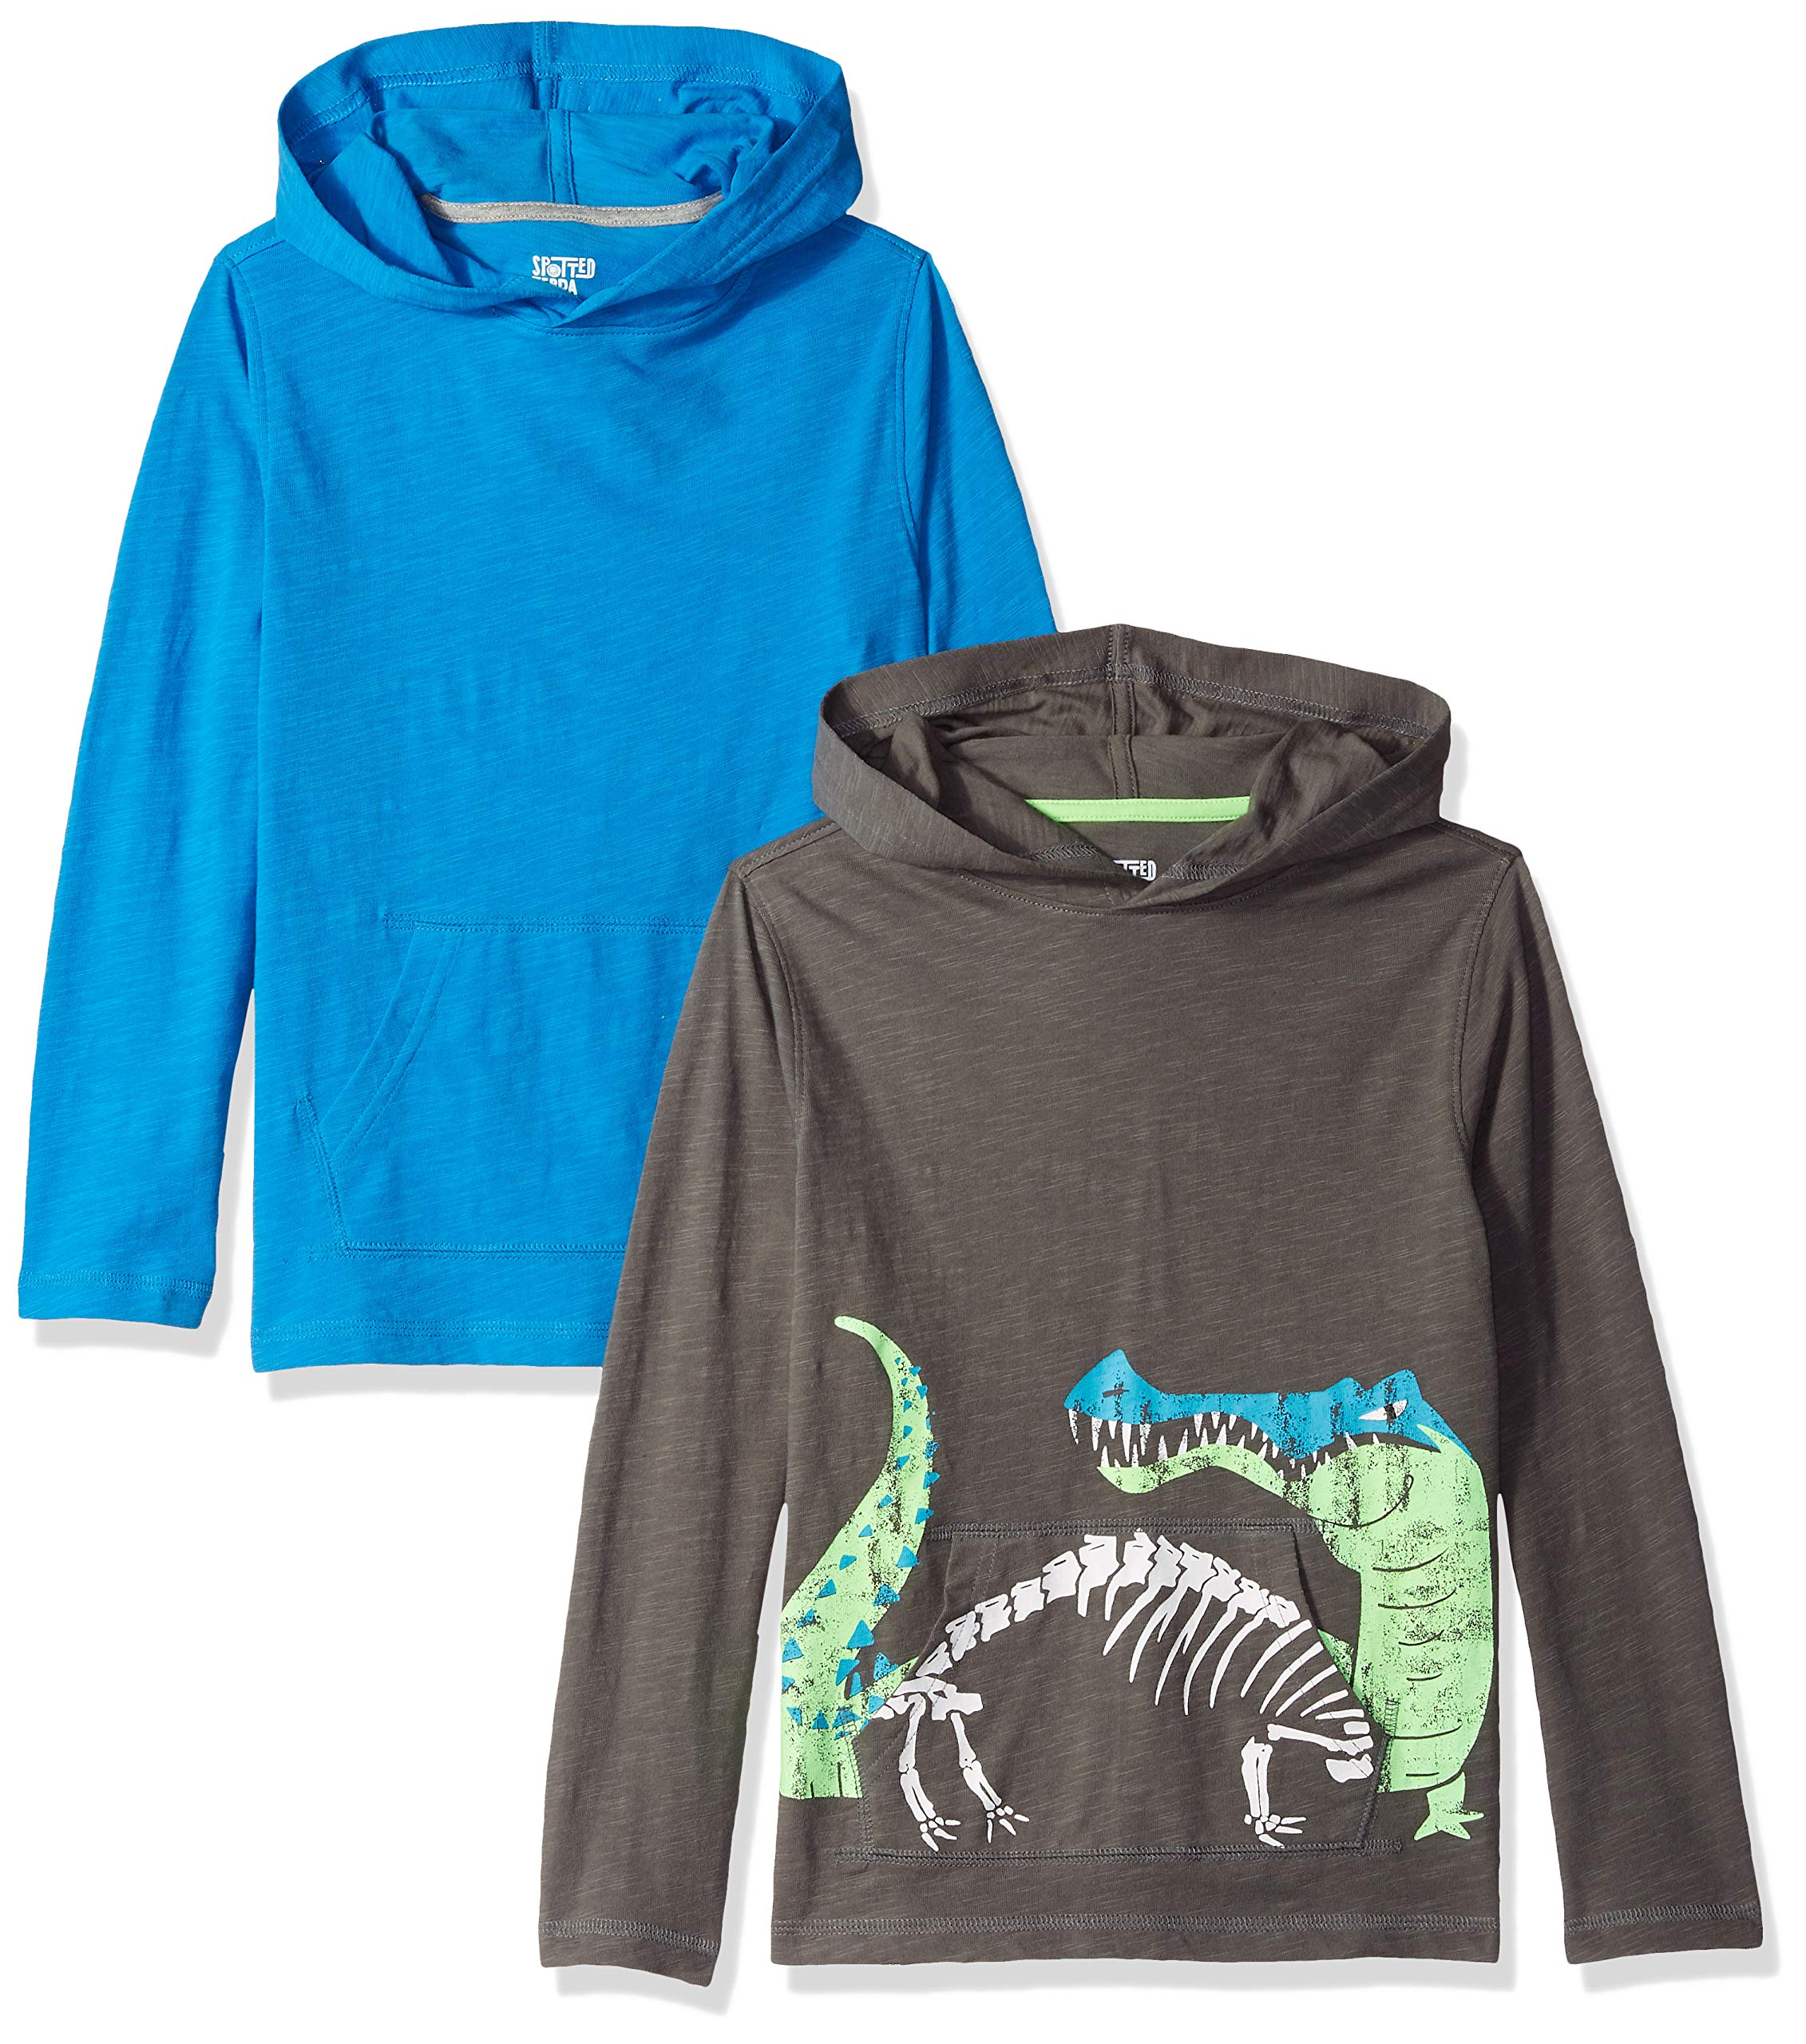 Spotted Zebra Little Boys' 2-Pack Hooded Long-Sleeve T-Shirts, Gator, Small (6-7)